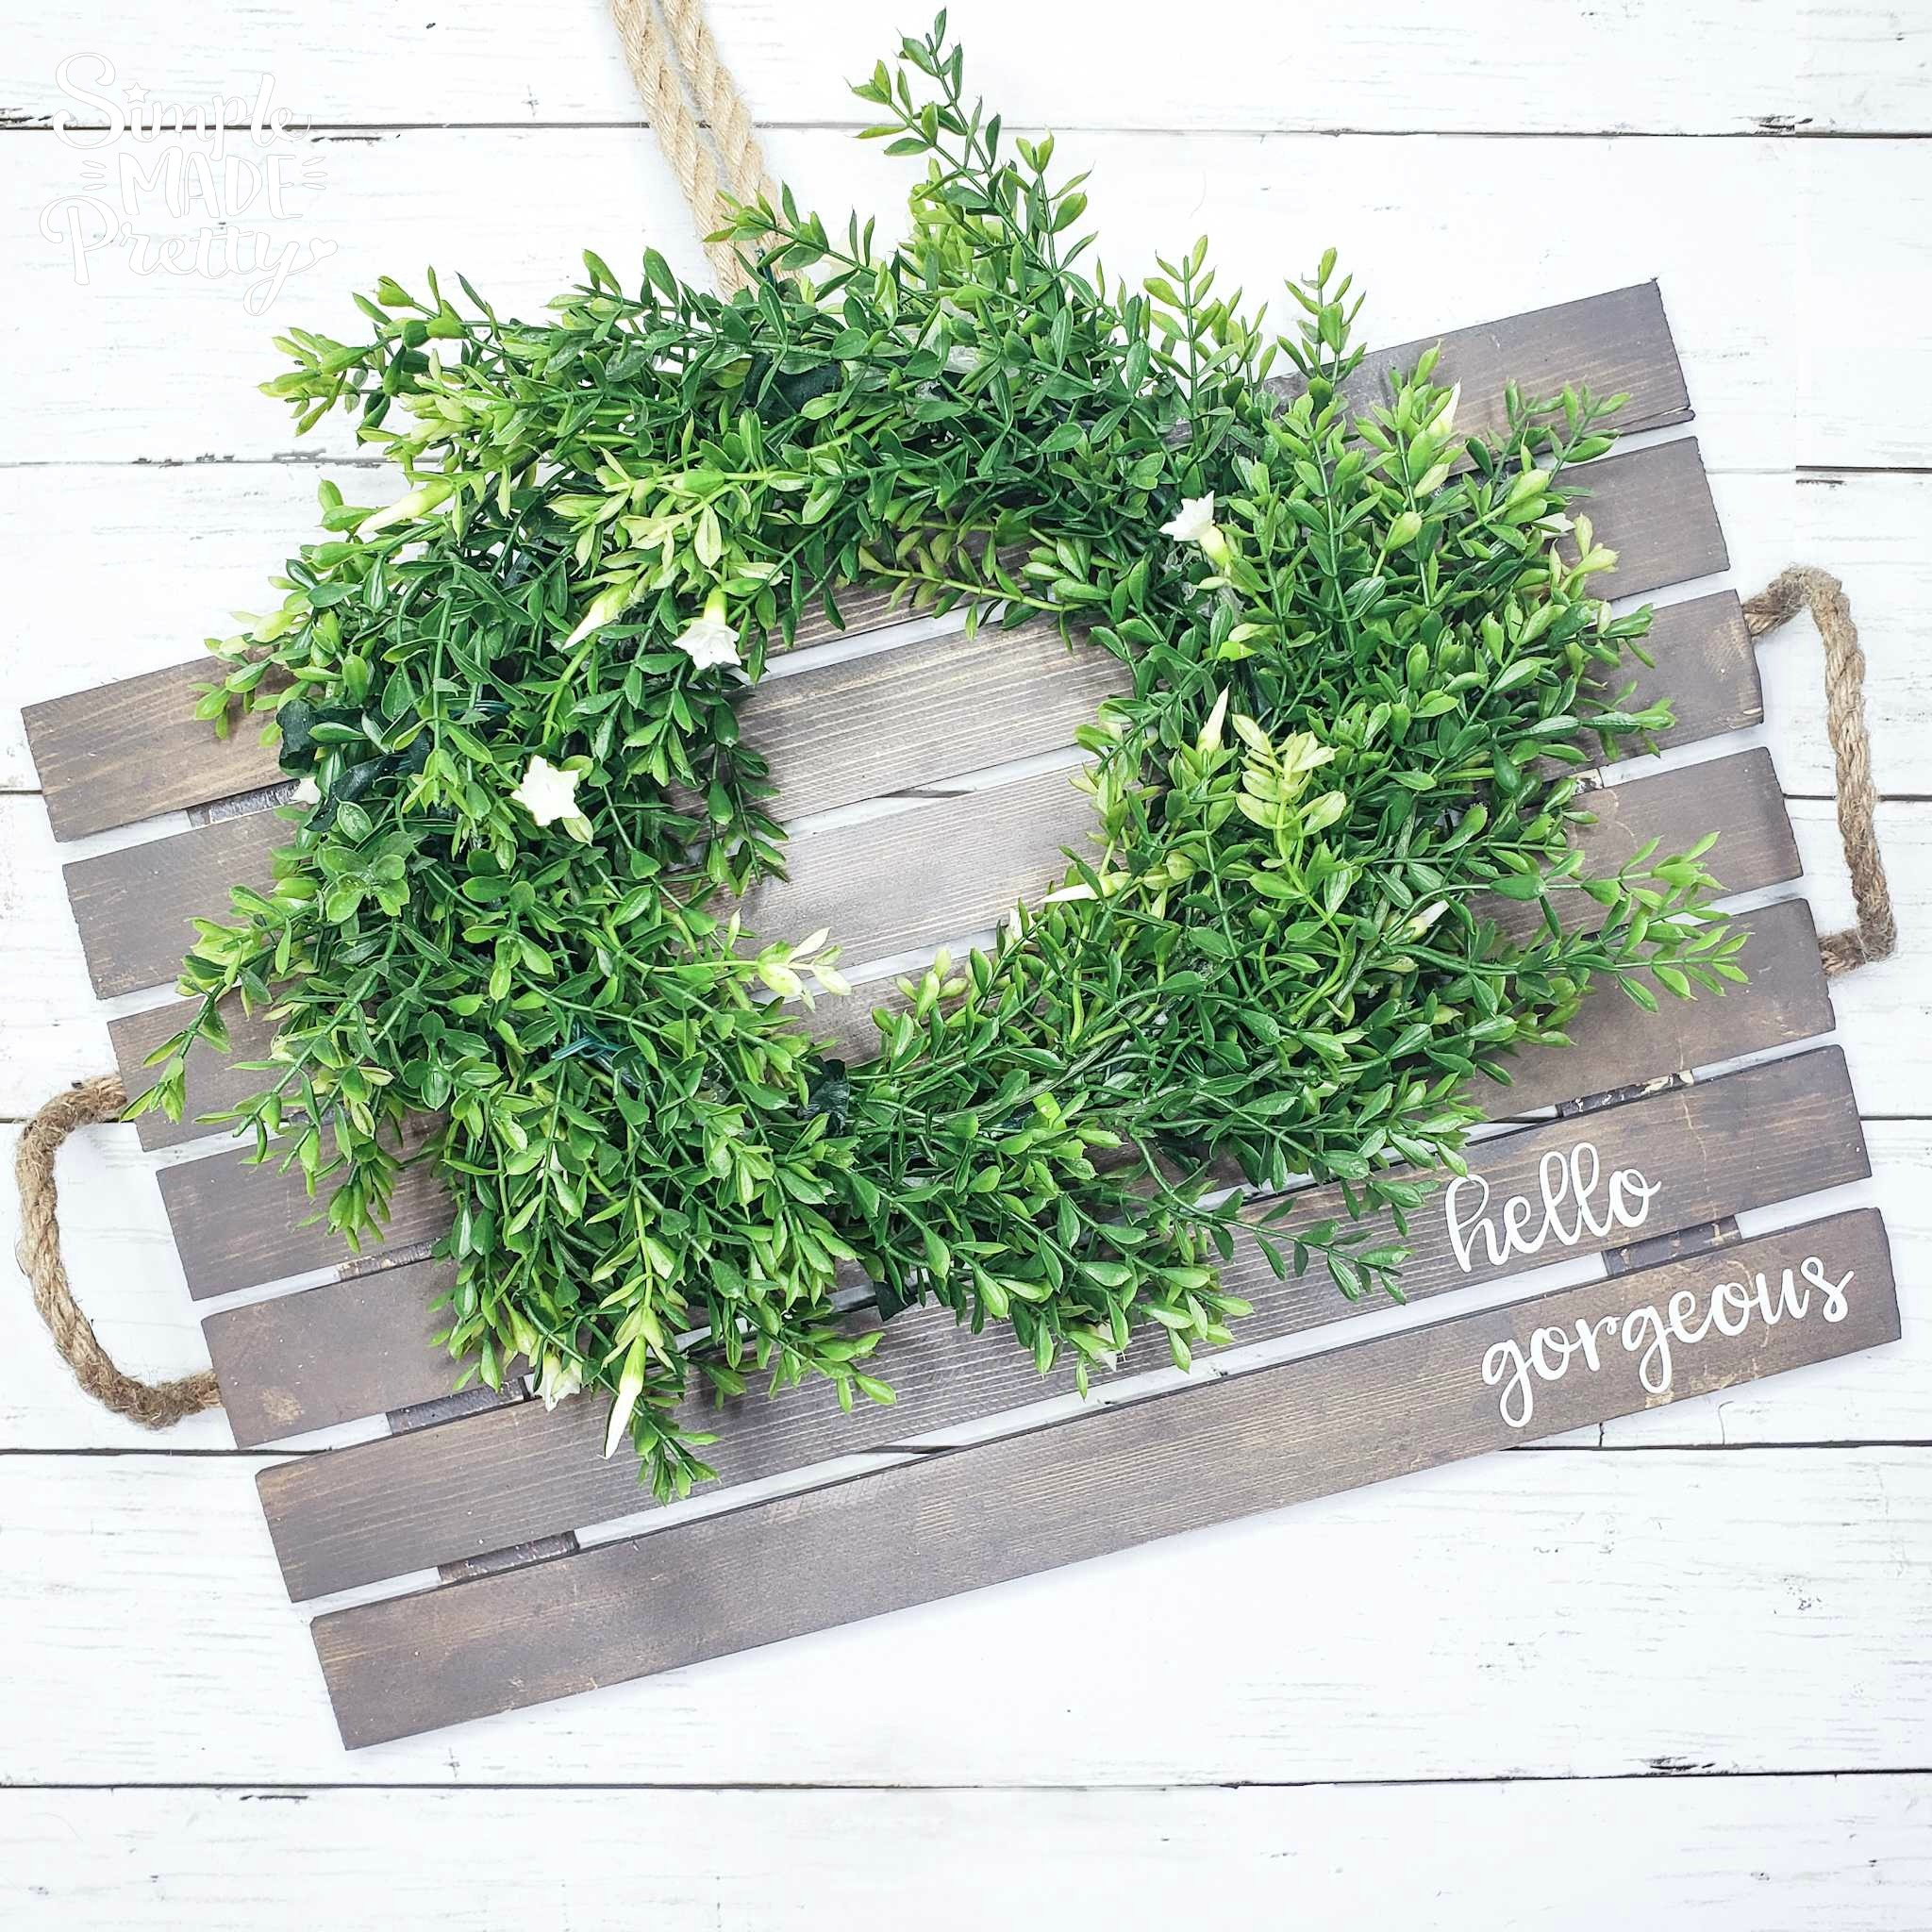 farmhouse tray, farmhouse tray DIY, Dollar Tree DIY, Dollar Tree haul, Dollar Tree DIY Decorating Ideas, Dollar Tree Kitchen, Dollar Tree Kitchen Decor, Dollar Tree Tray, YouTube Dollar Tree DIY, Dollar Tree DIY 2019, Dollar Tree videos, Dollar Tree hacks, Dollar Tree crafts, Dollar Tree farmhouse decor, Dollar Tree farmhouse sign, Dollar store farmhouse decor, Dollar store DIY decor, Dollar store kitchen decor